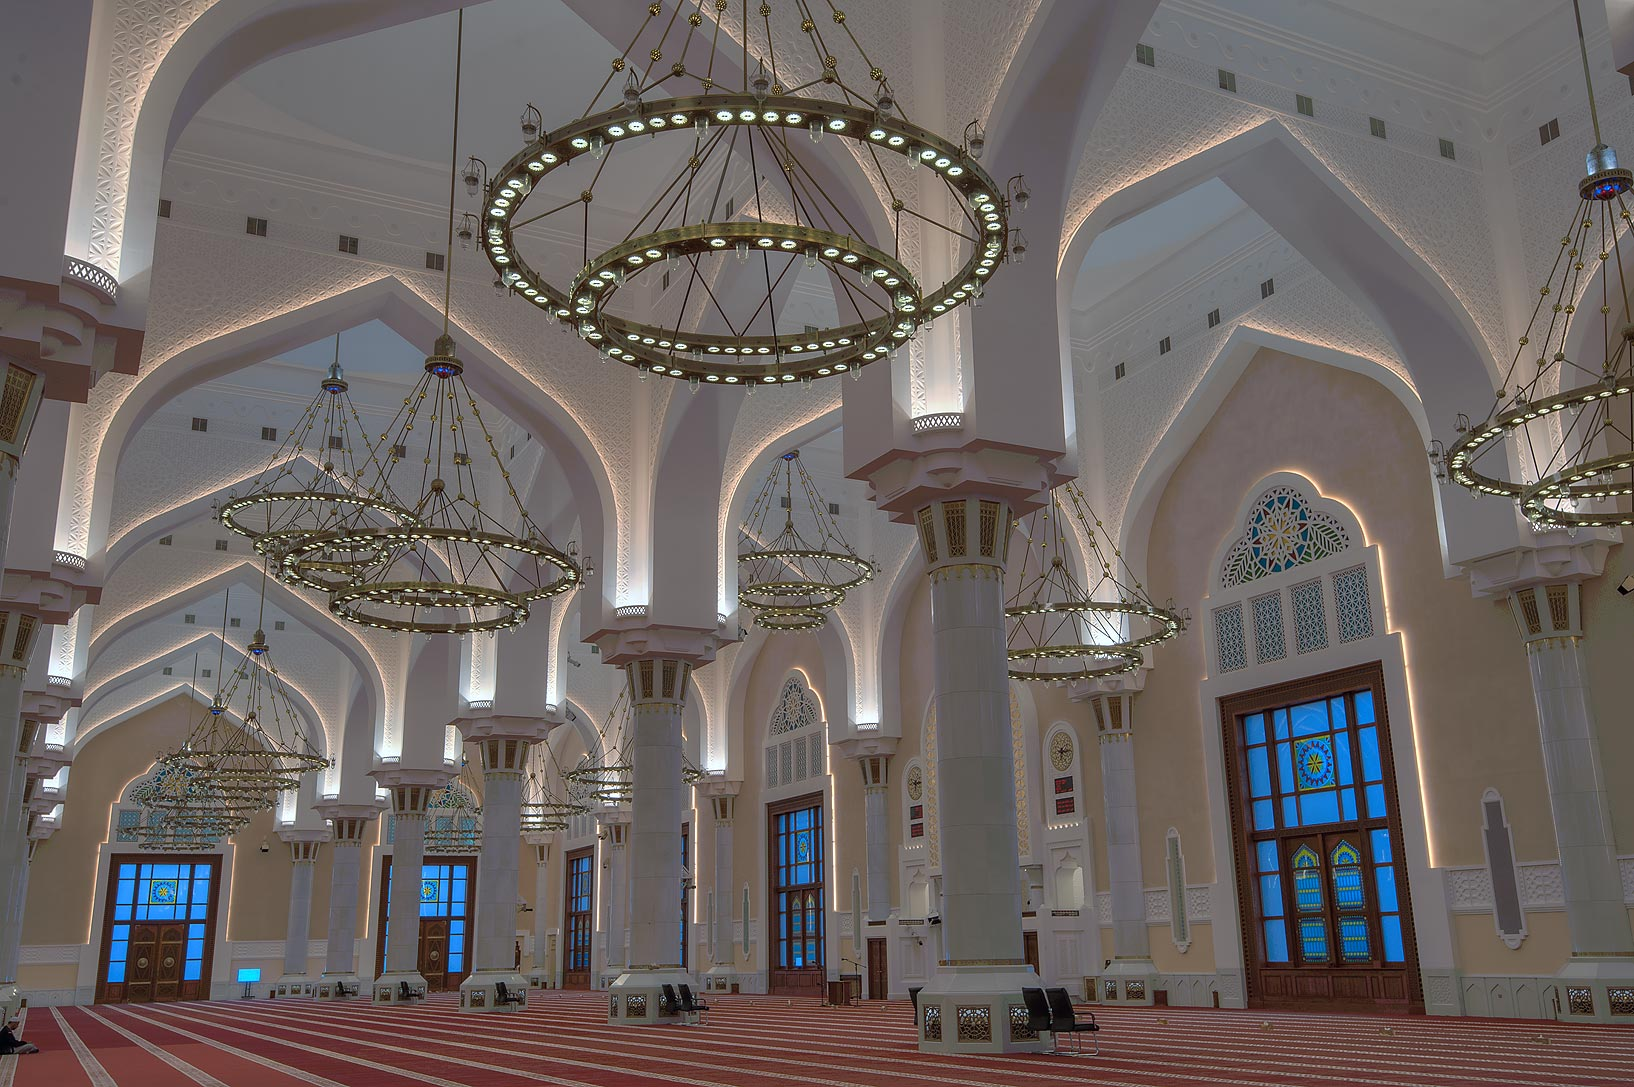 Galleries of prayer hall of State Mosque (Sheikh...Wahhab Mosque) at morning. Doha, Qatar